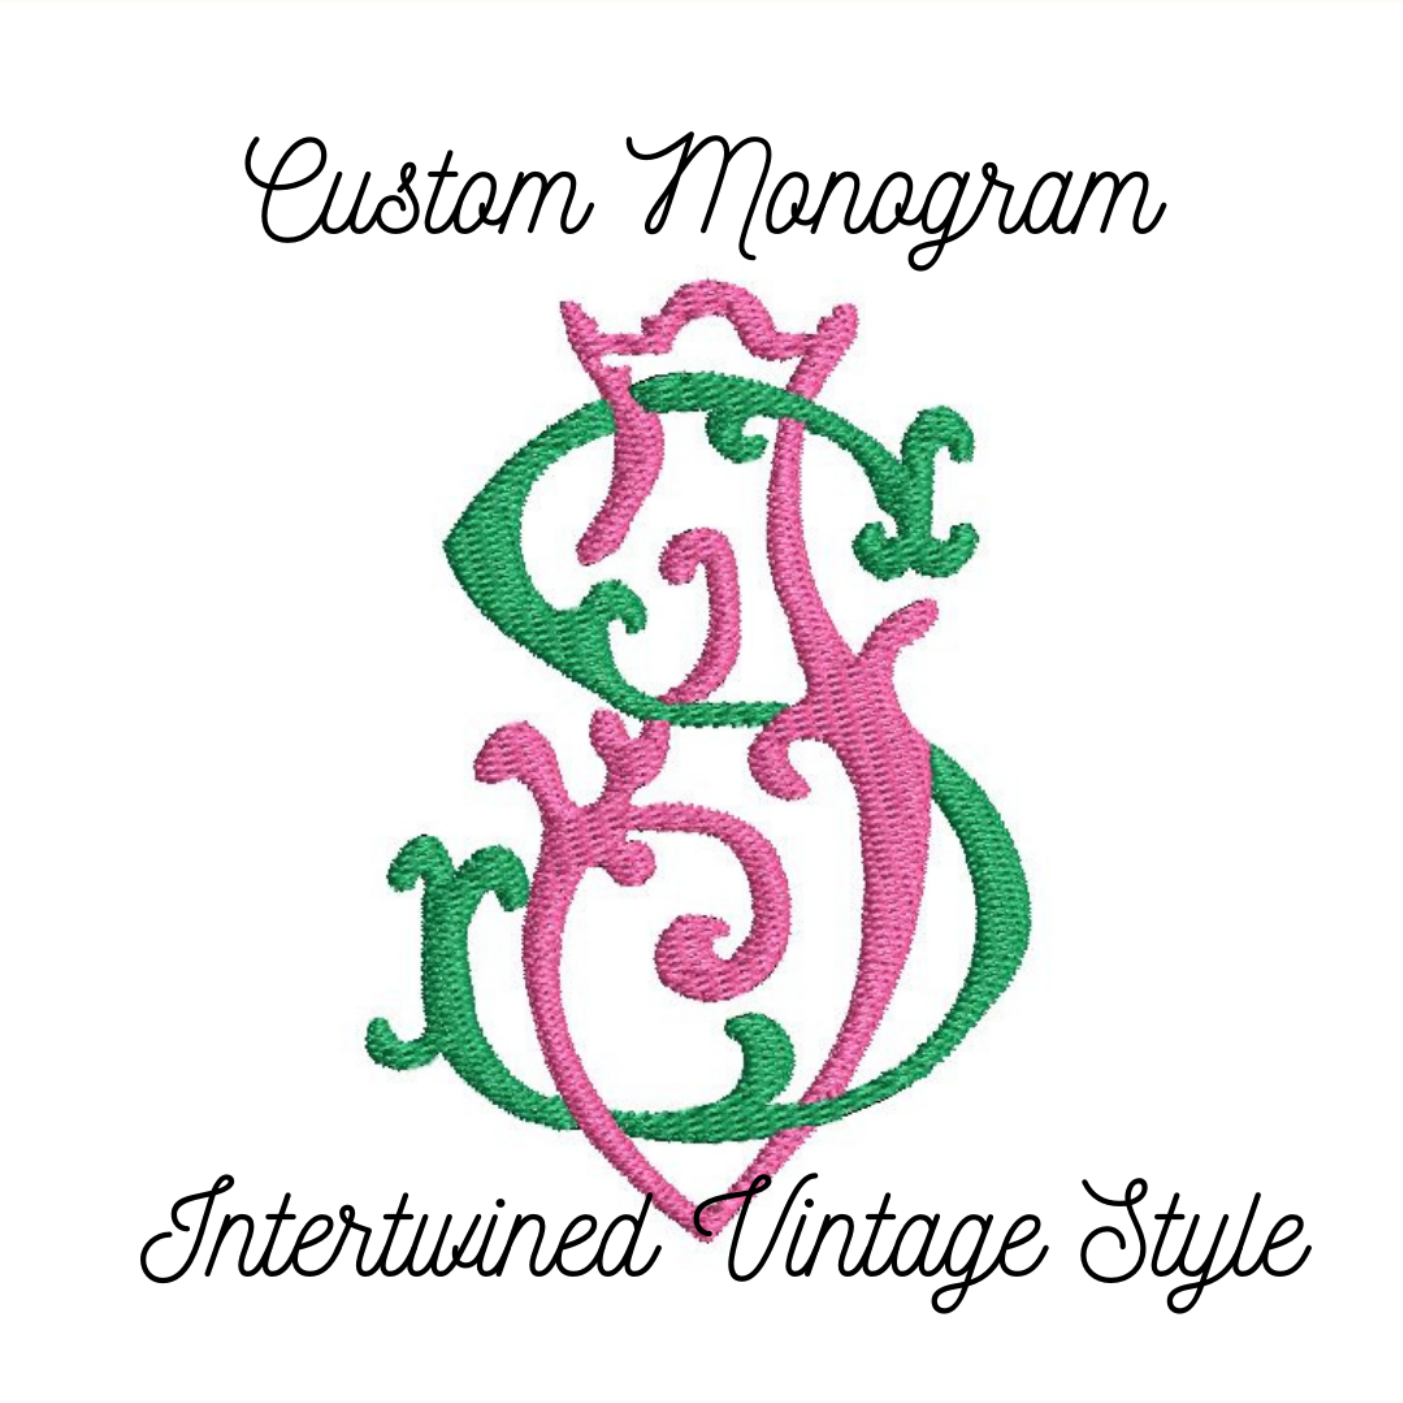 Custom Vintage Style Intertwined Monogram 2 Letters Machine Embroidery Design